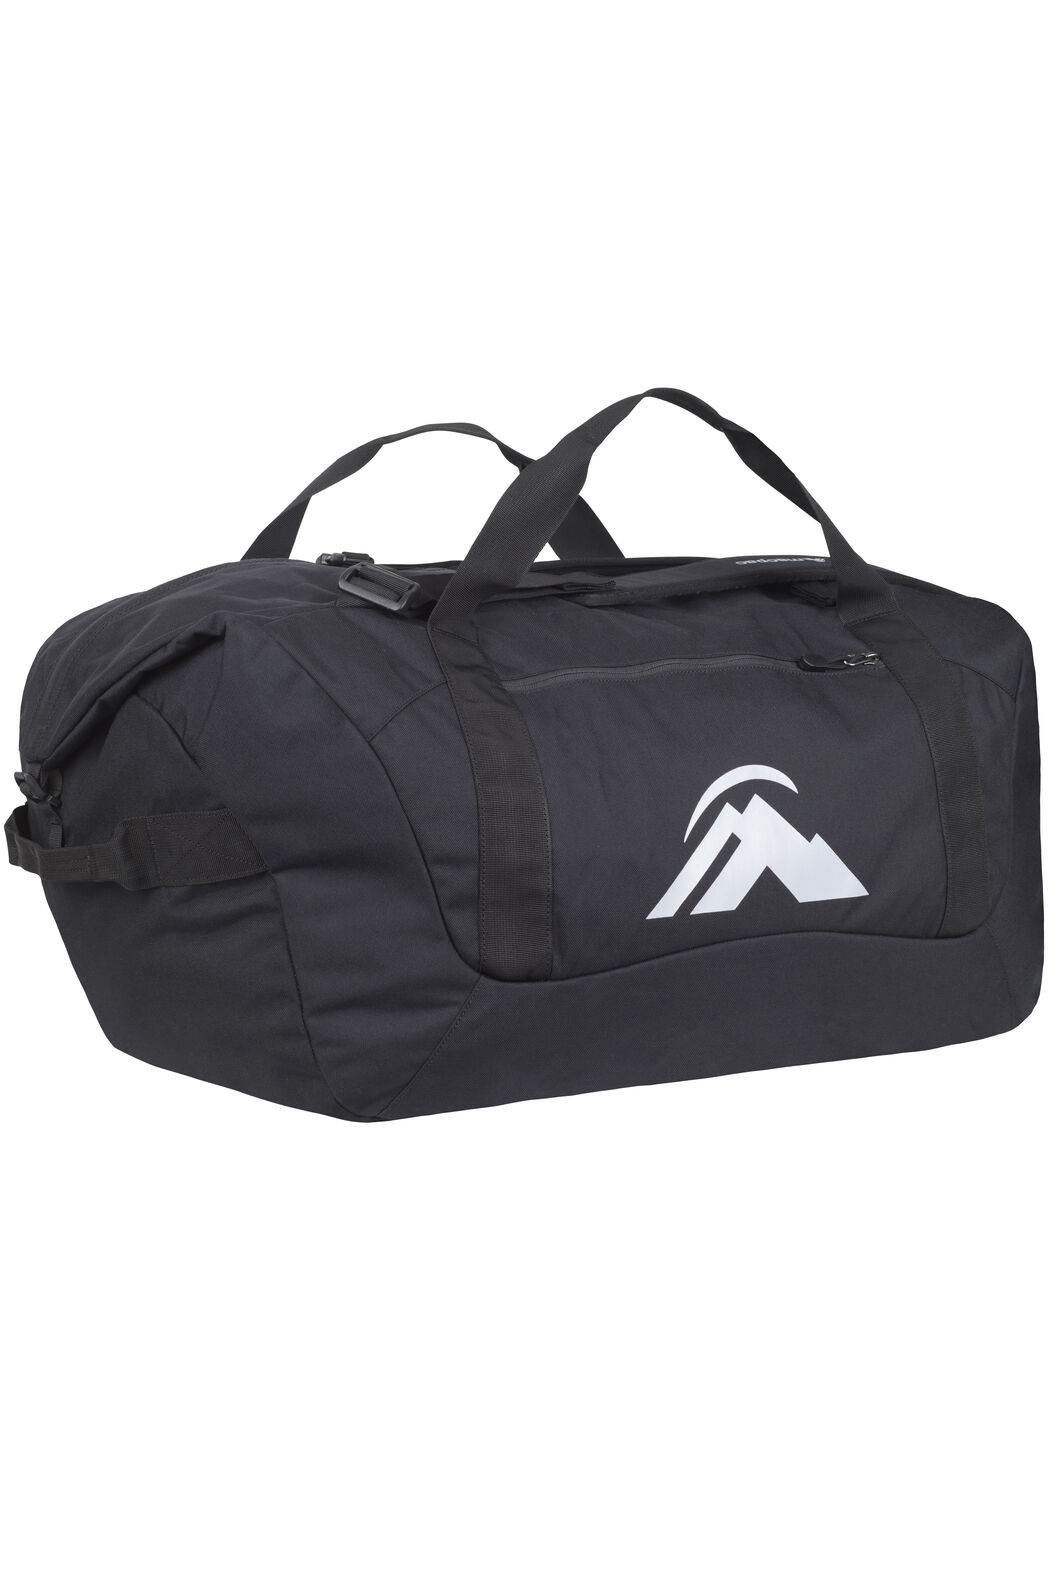 Duffel 120L, Black, hi-res